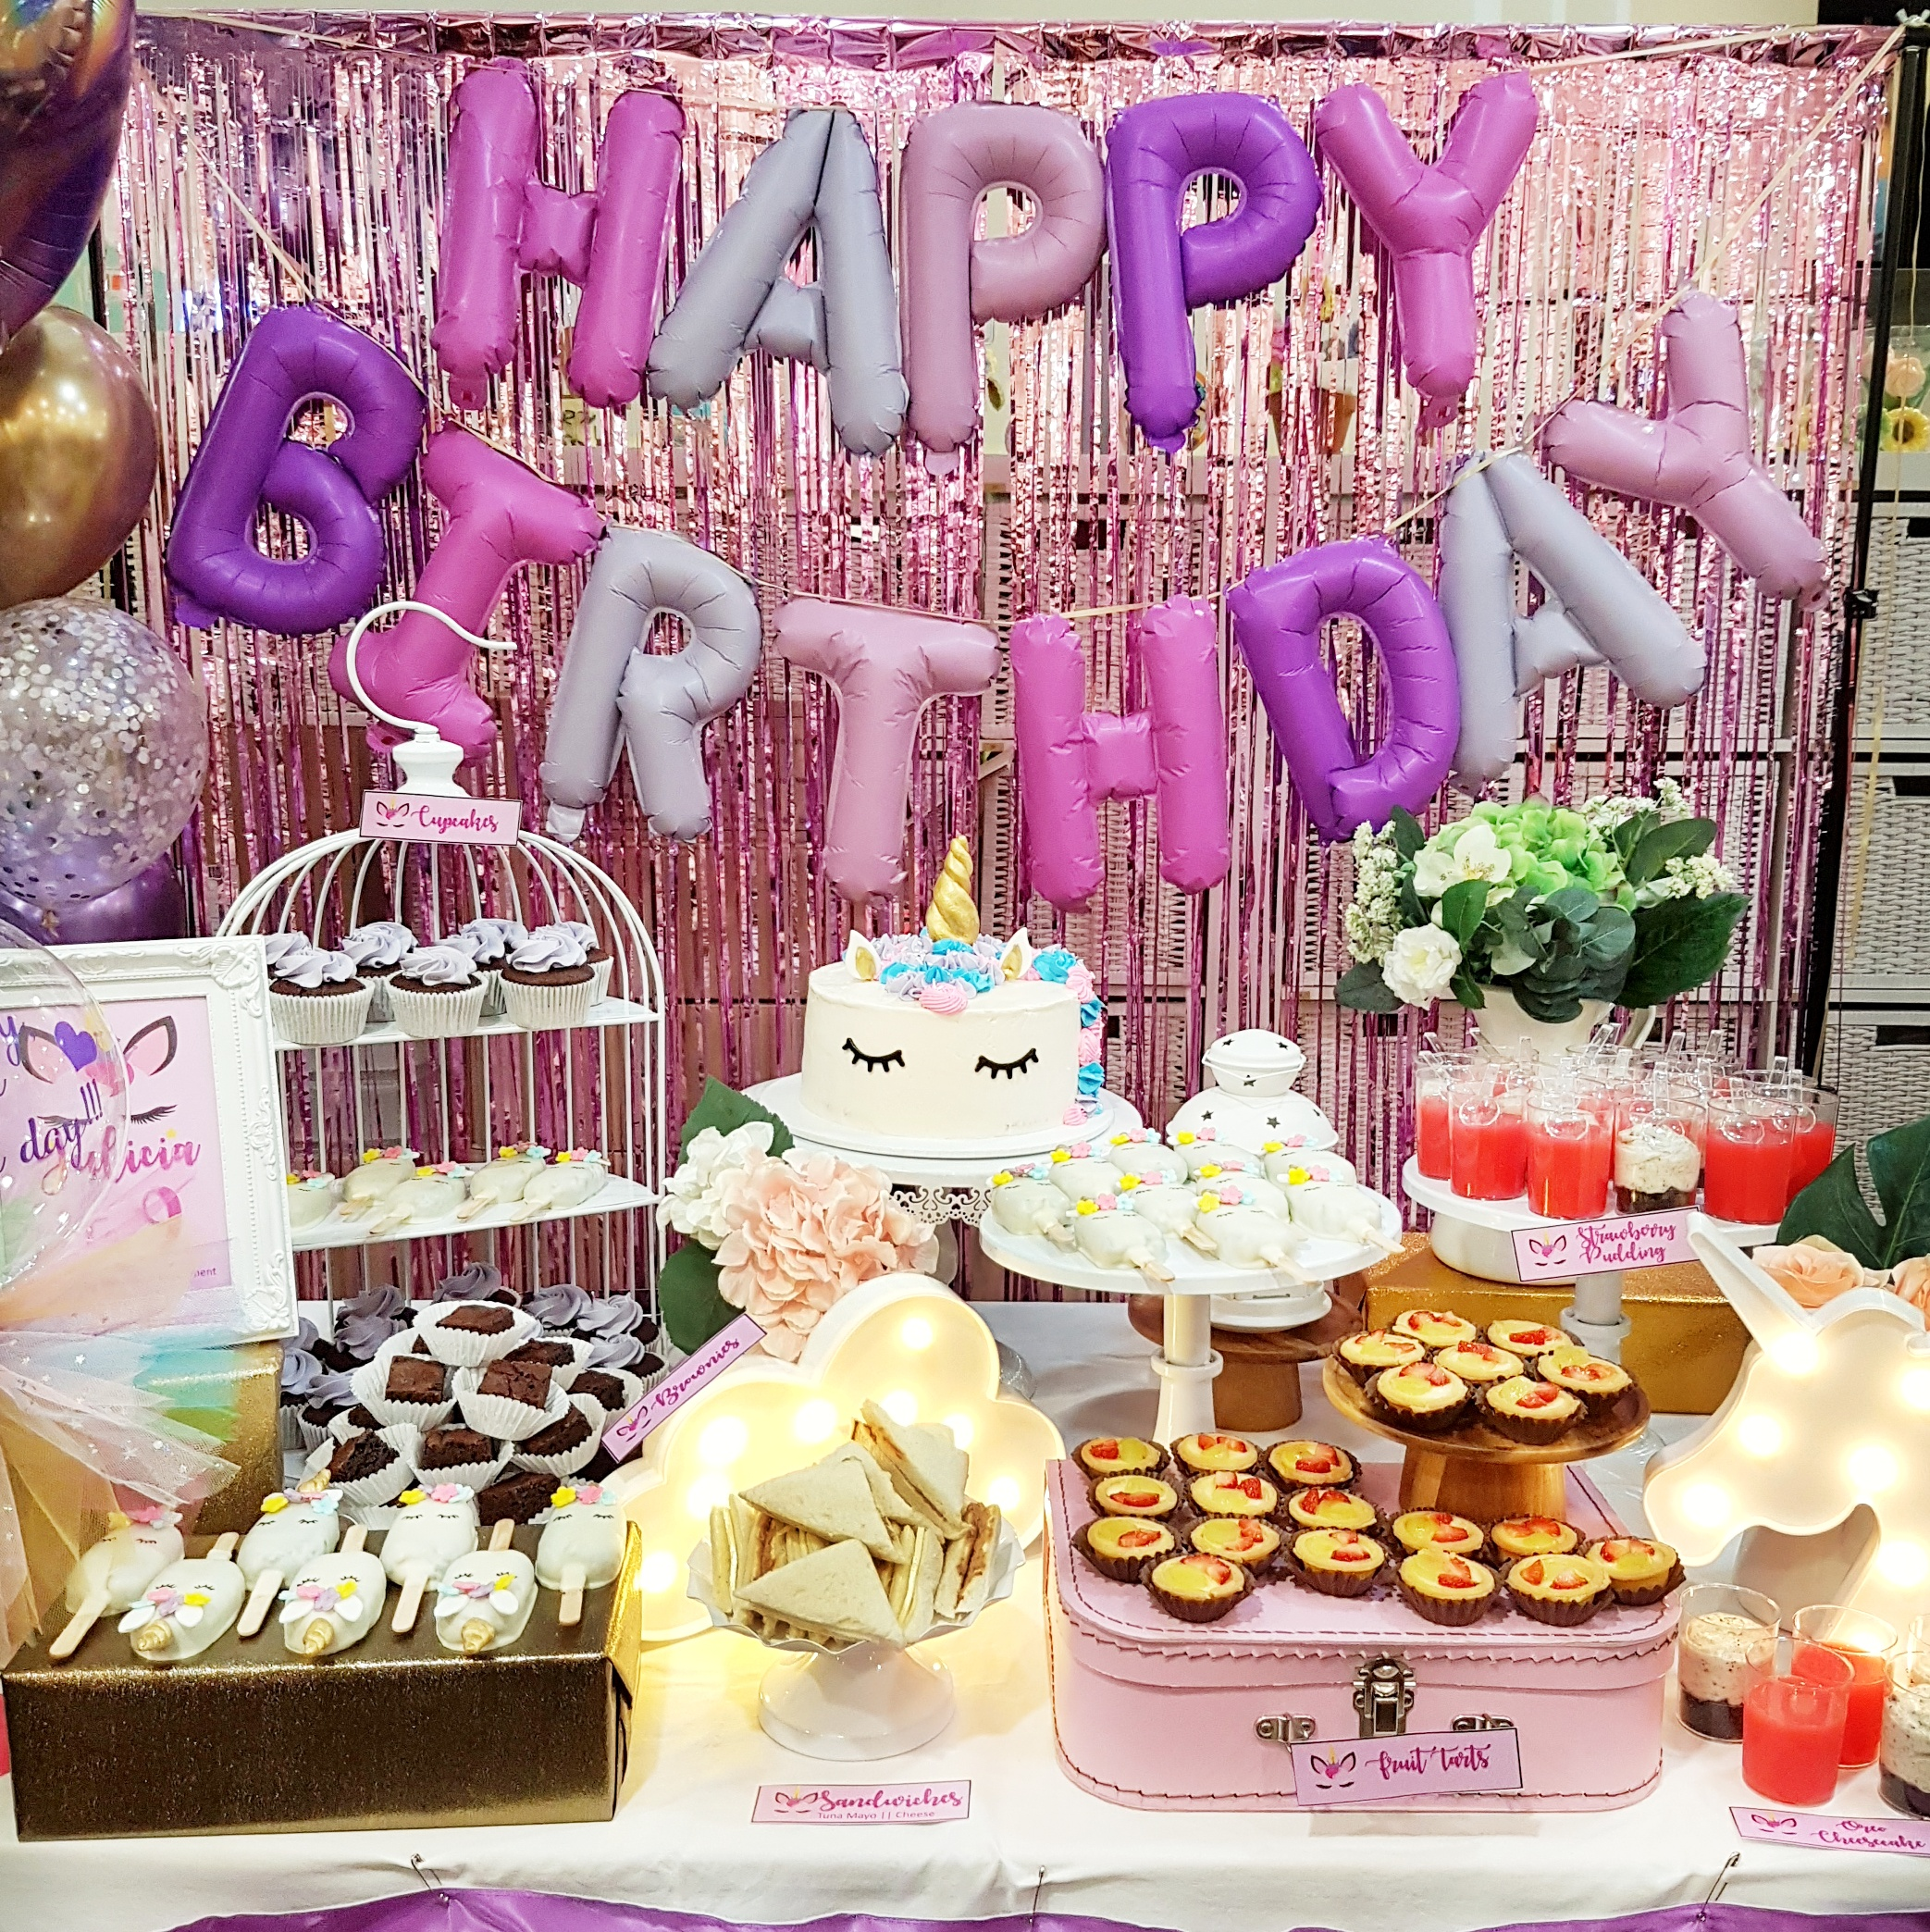 Unicorn dessert table by The Baking Experiment